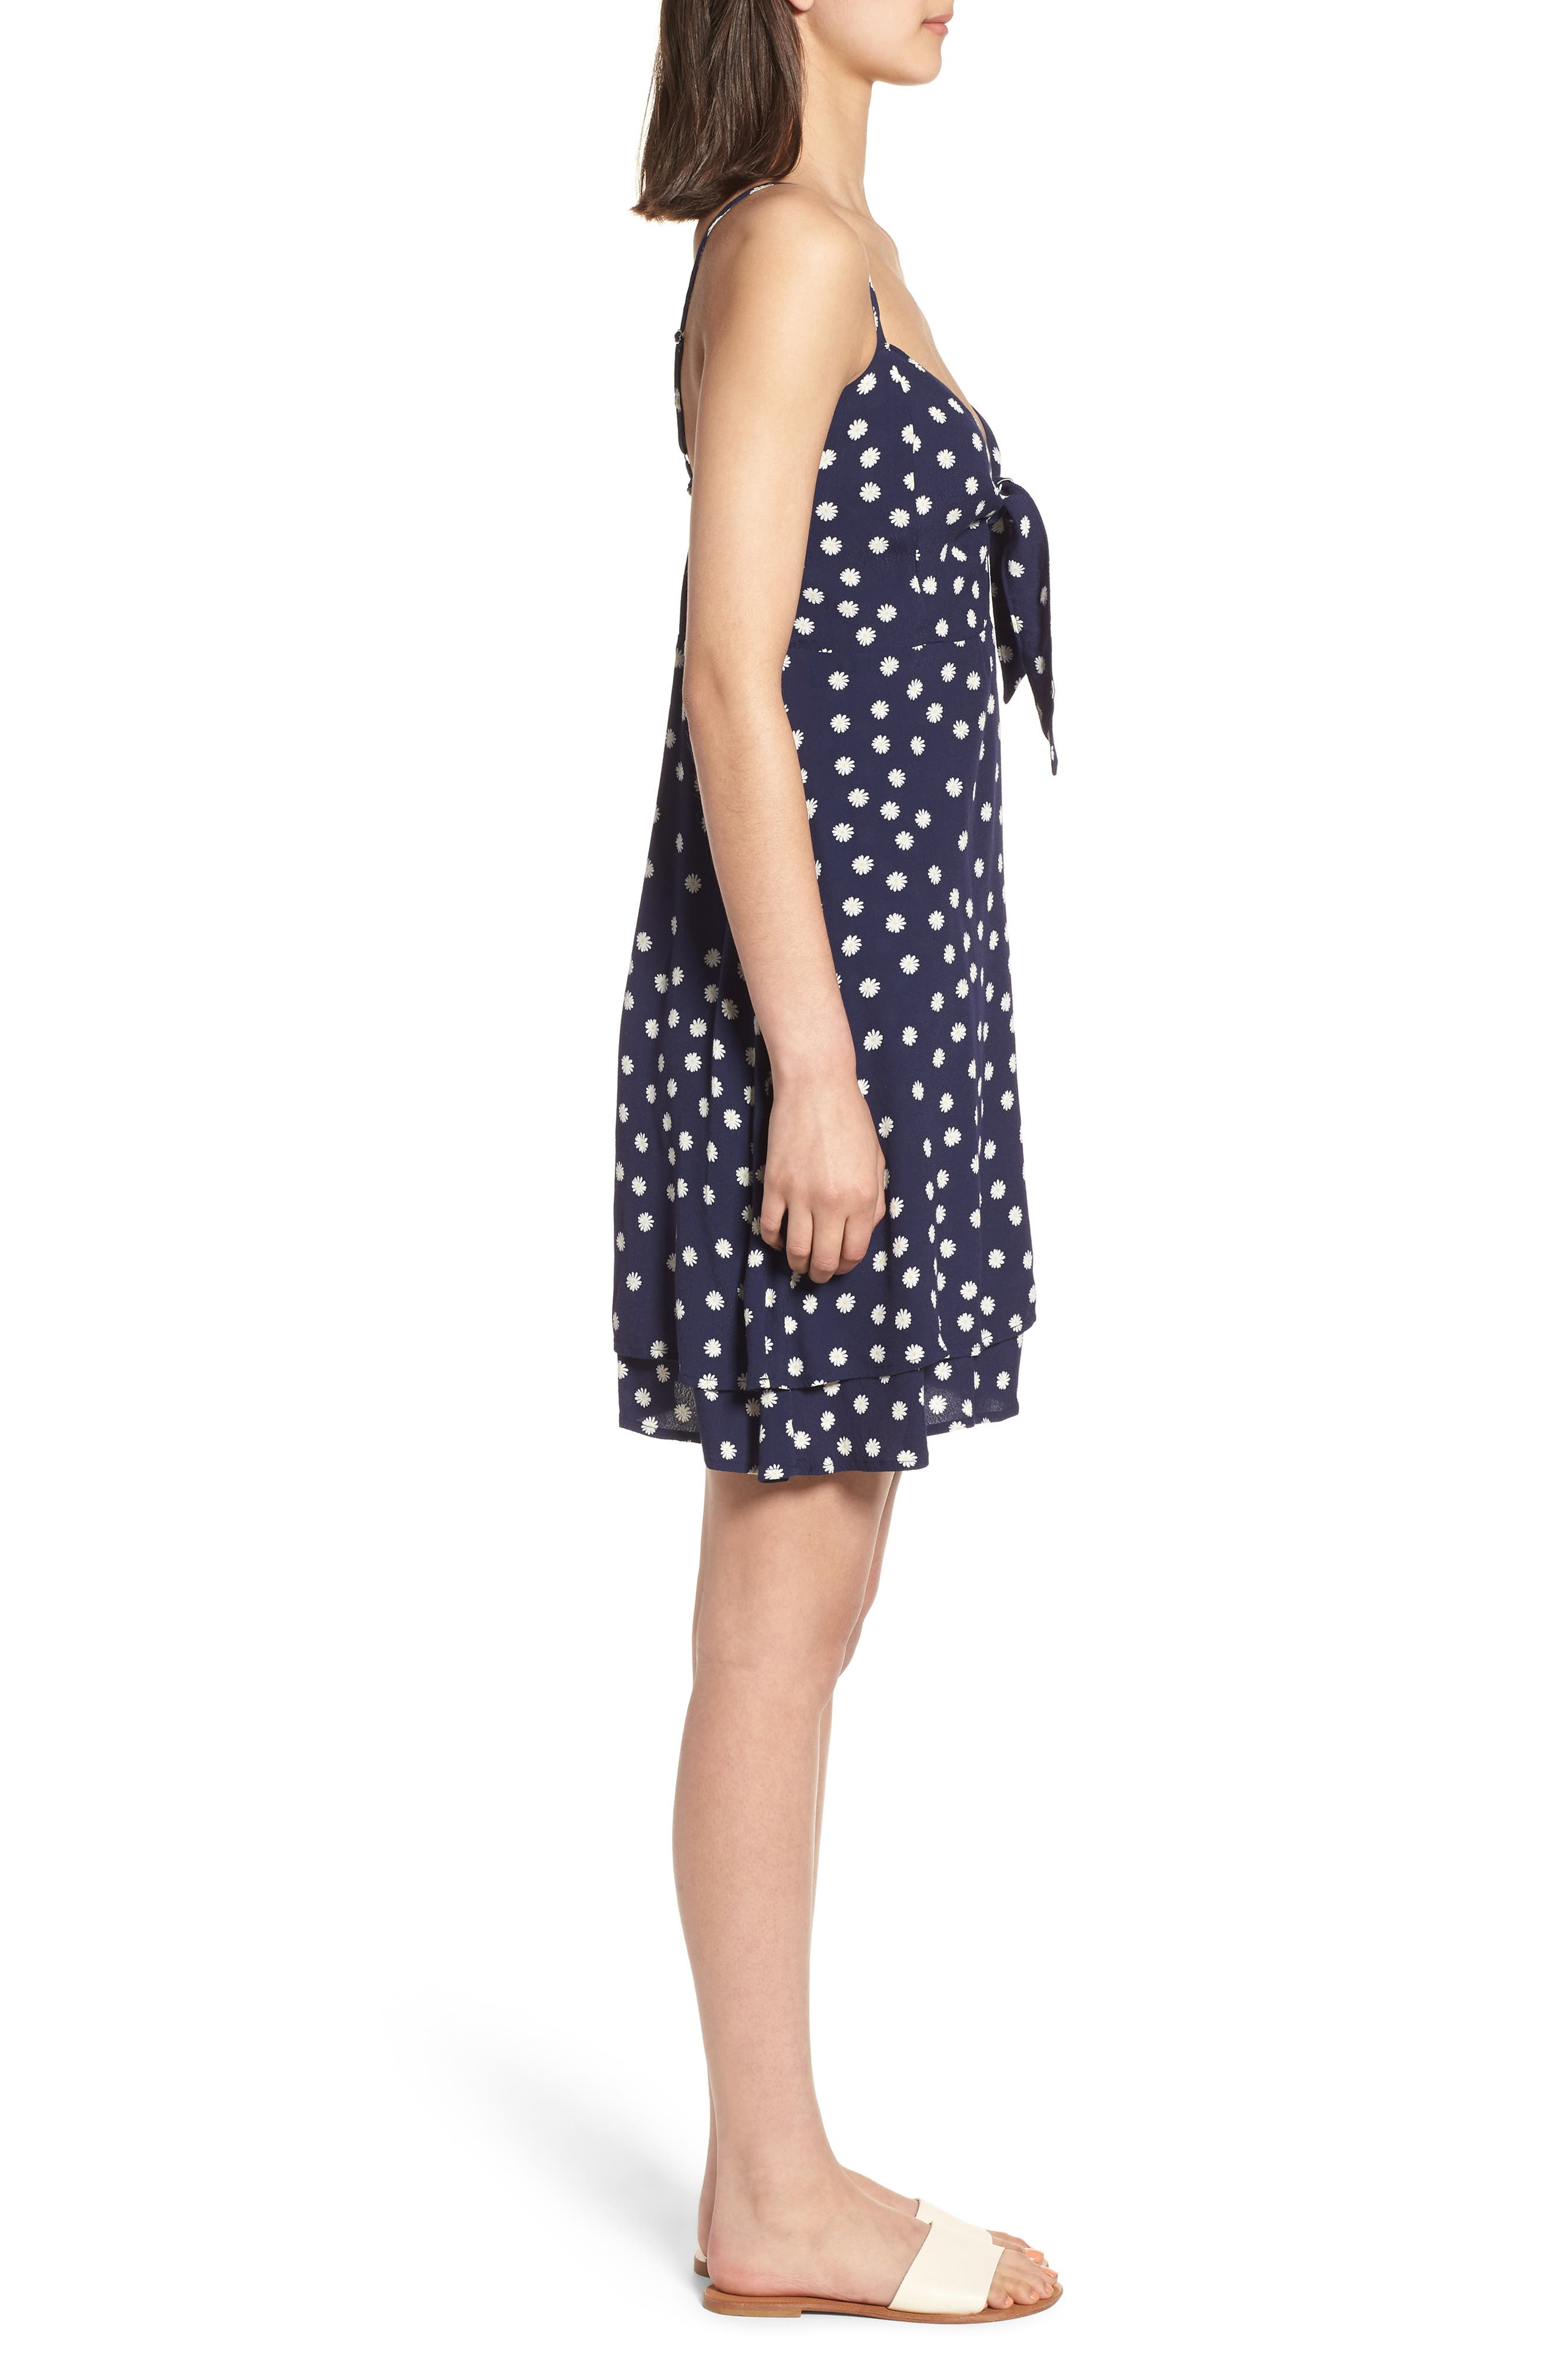 August Daisy Tie Front Dress,                             Alternate thumbnail 3, color,                             Navy Daisies